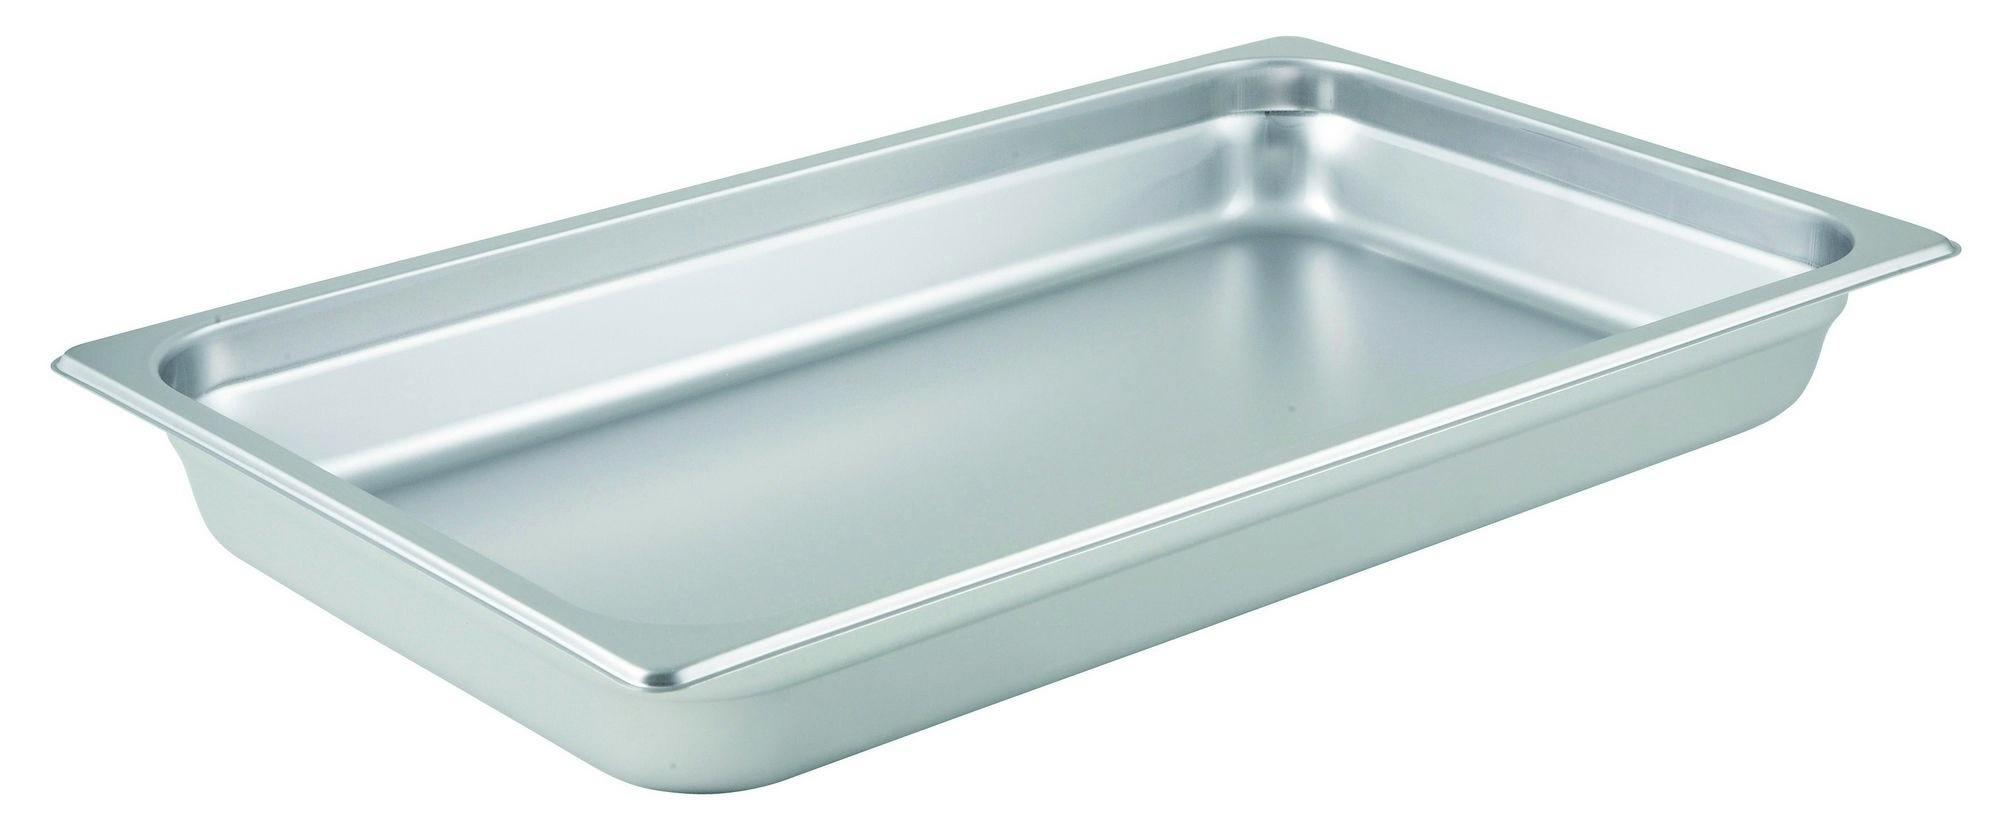 Winco Full Size Anti-Jamming Steam Table Pan (23 Gauge, 2.5